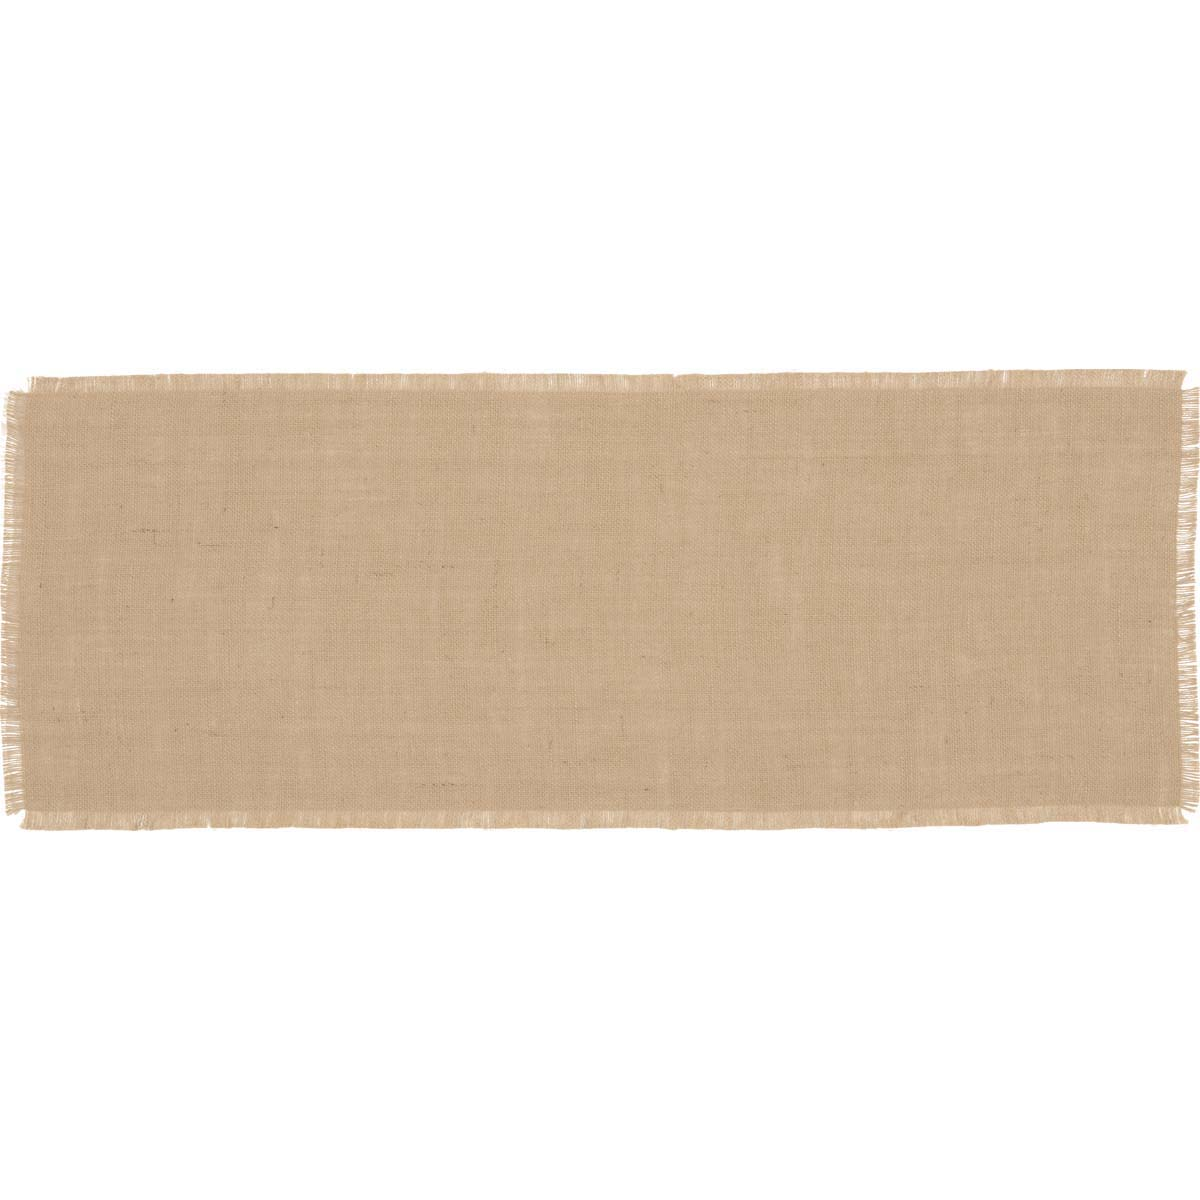 Jute Burlap Natural Runner 13x36